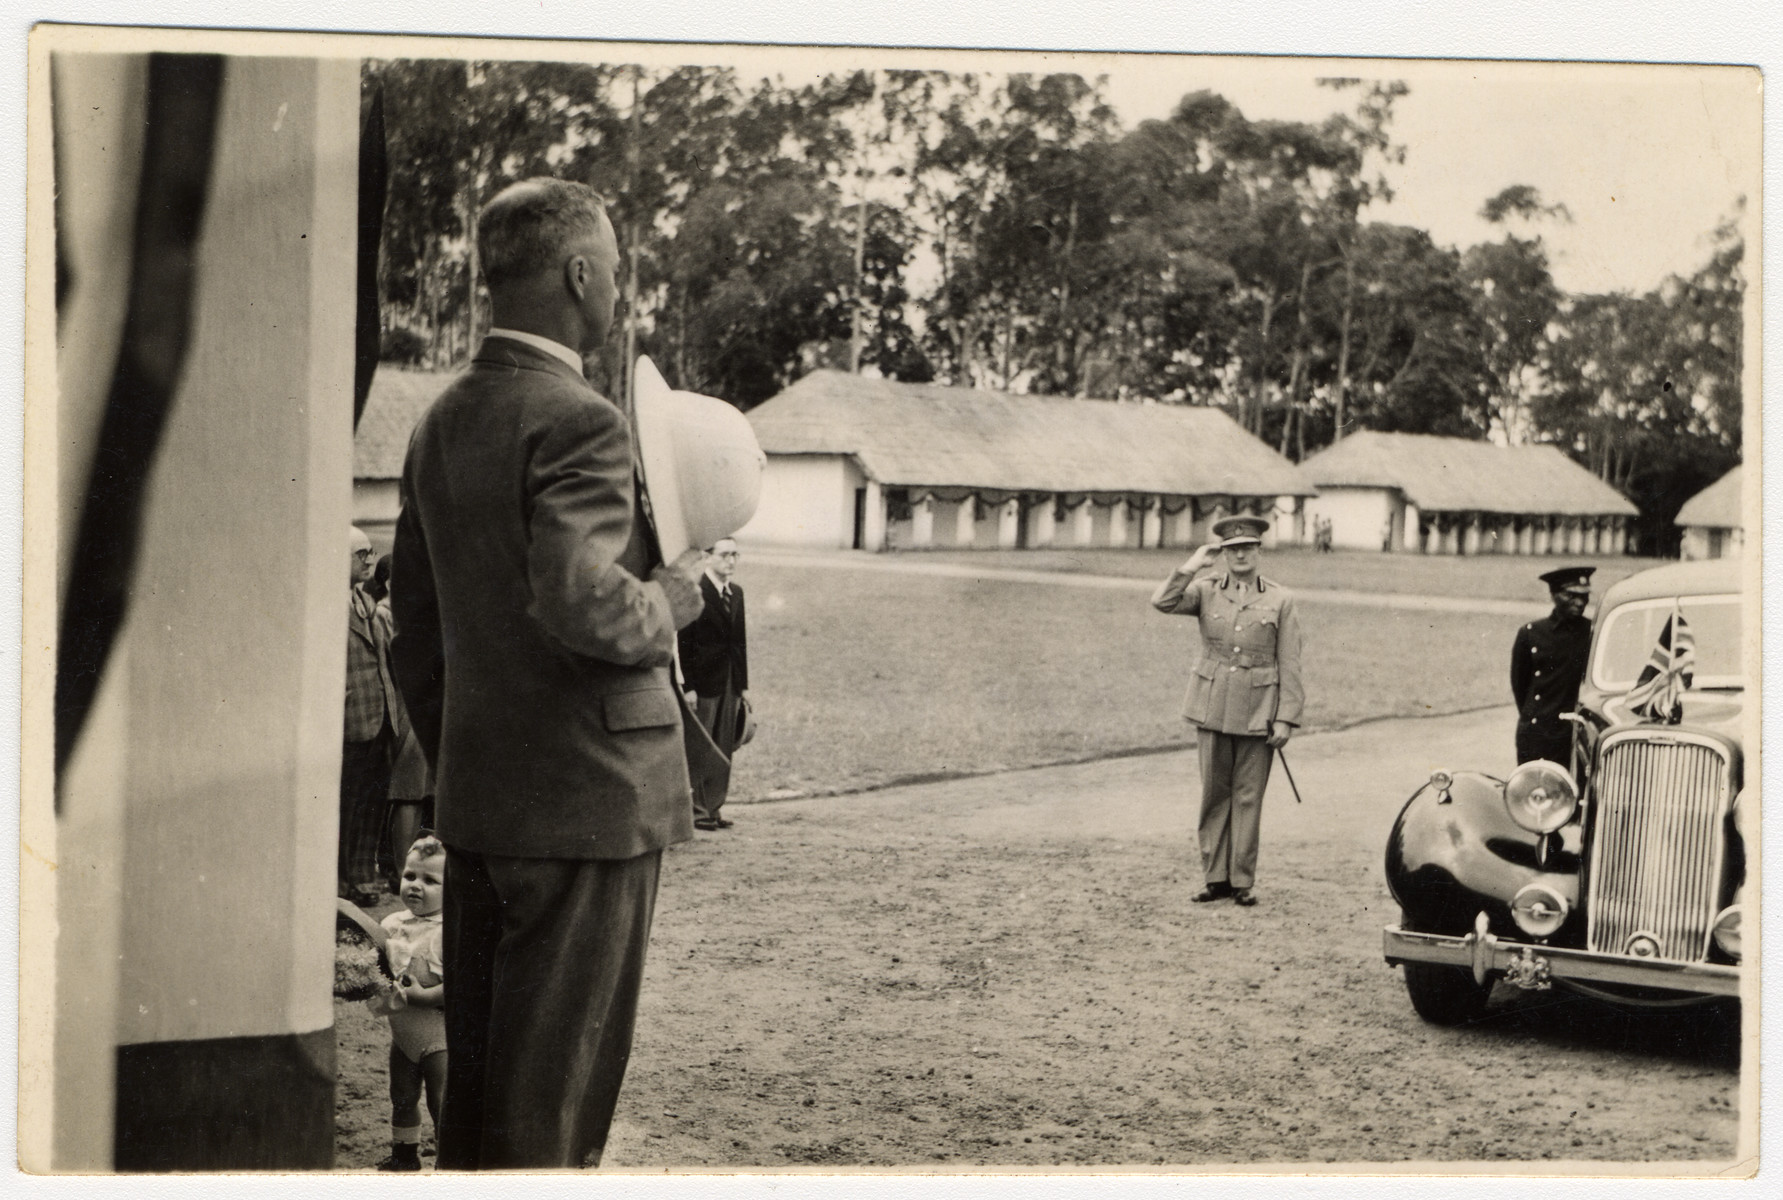 A British official inspects an internment camp for enemy aliens in Nyasaland.